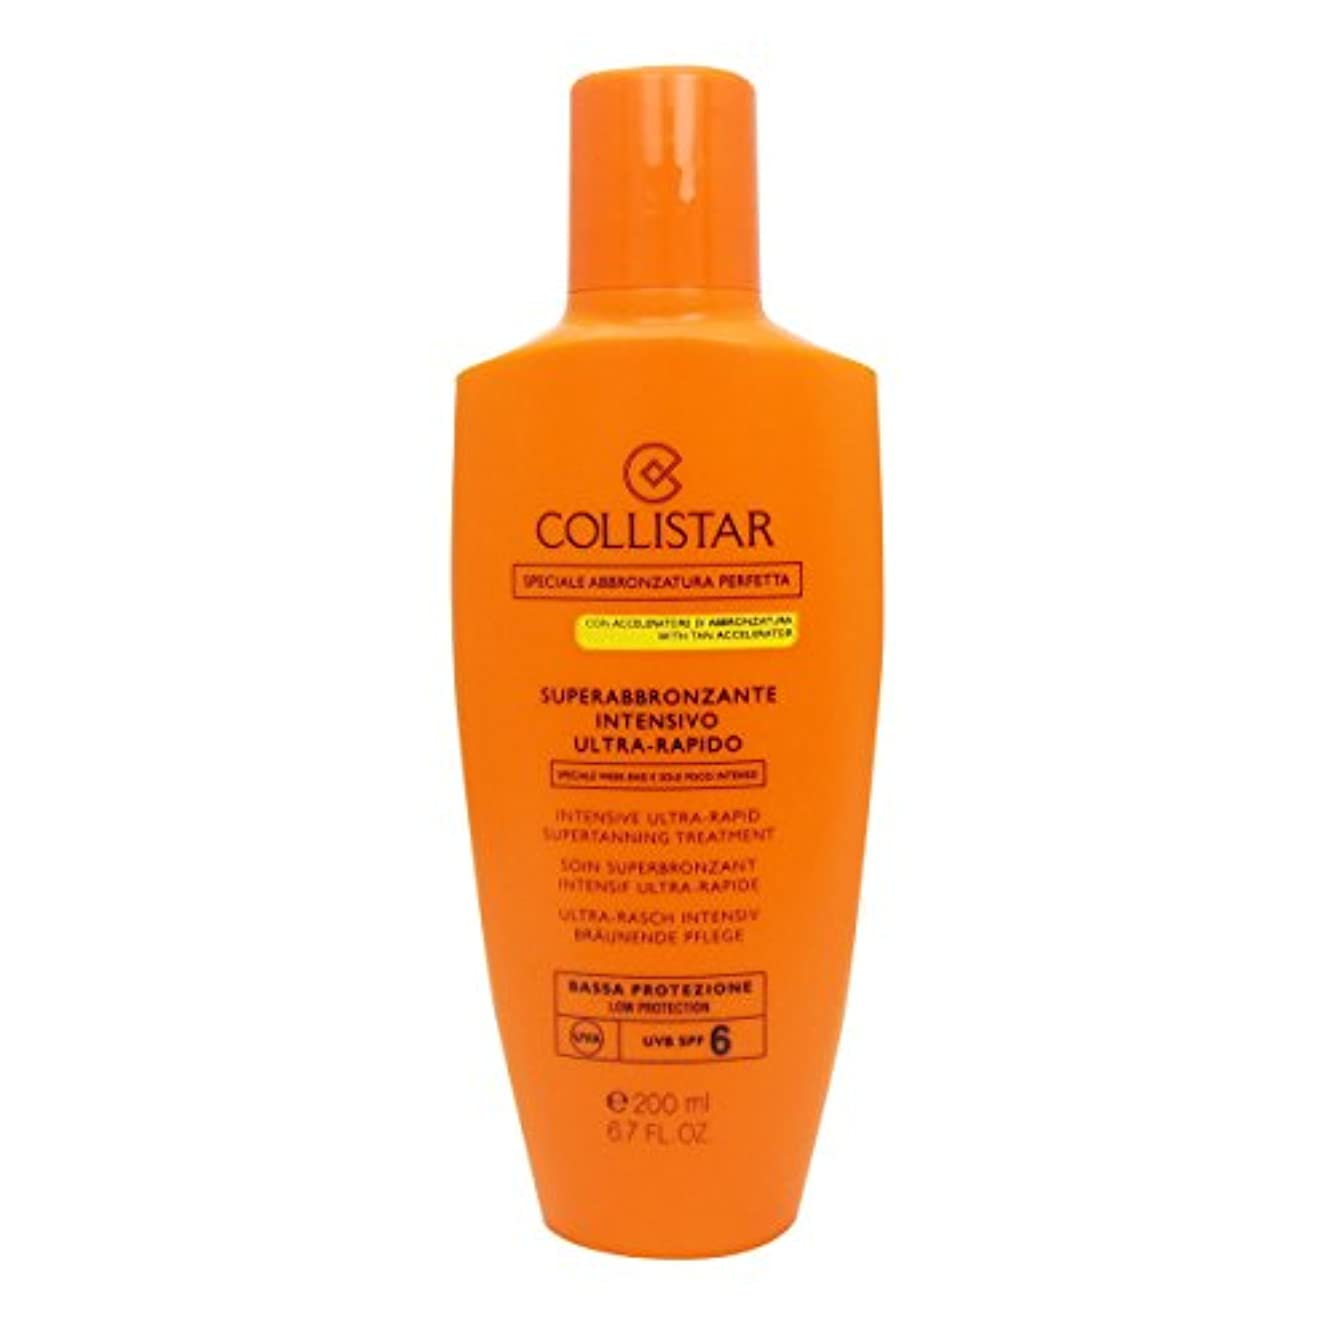 荒野より多いプロトタイプCollistar Intensive Ultra-rapid Supertanning Treament Spf6 200ml [並行輸入品]